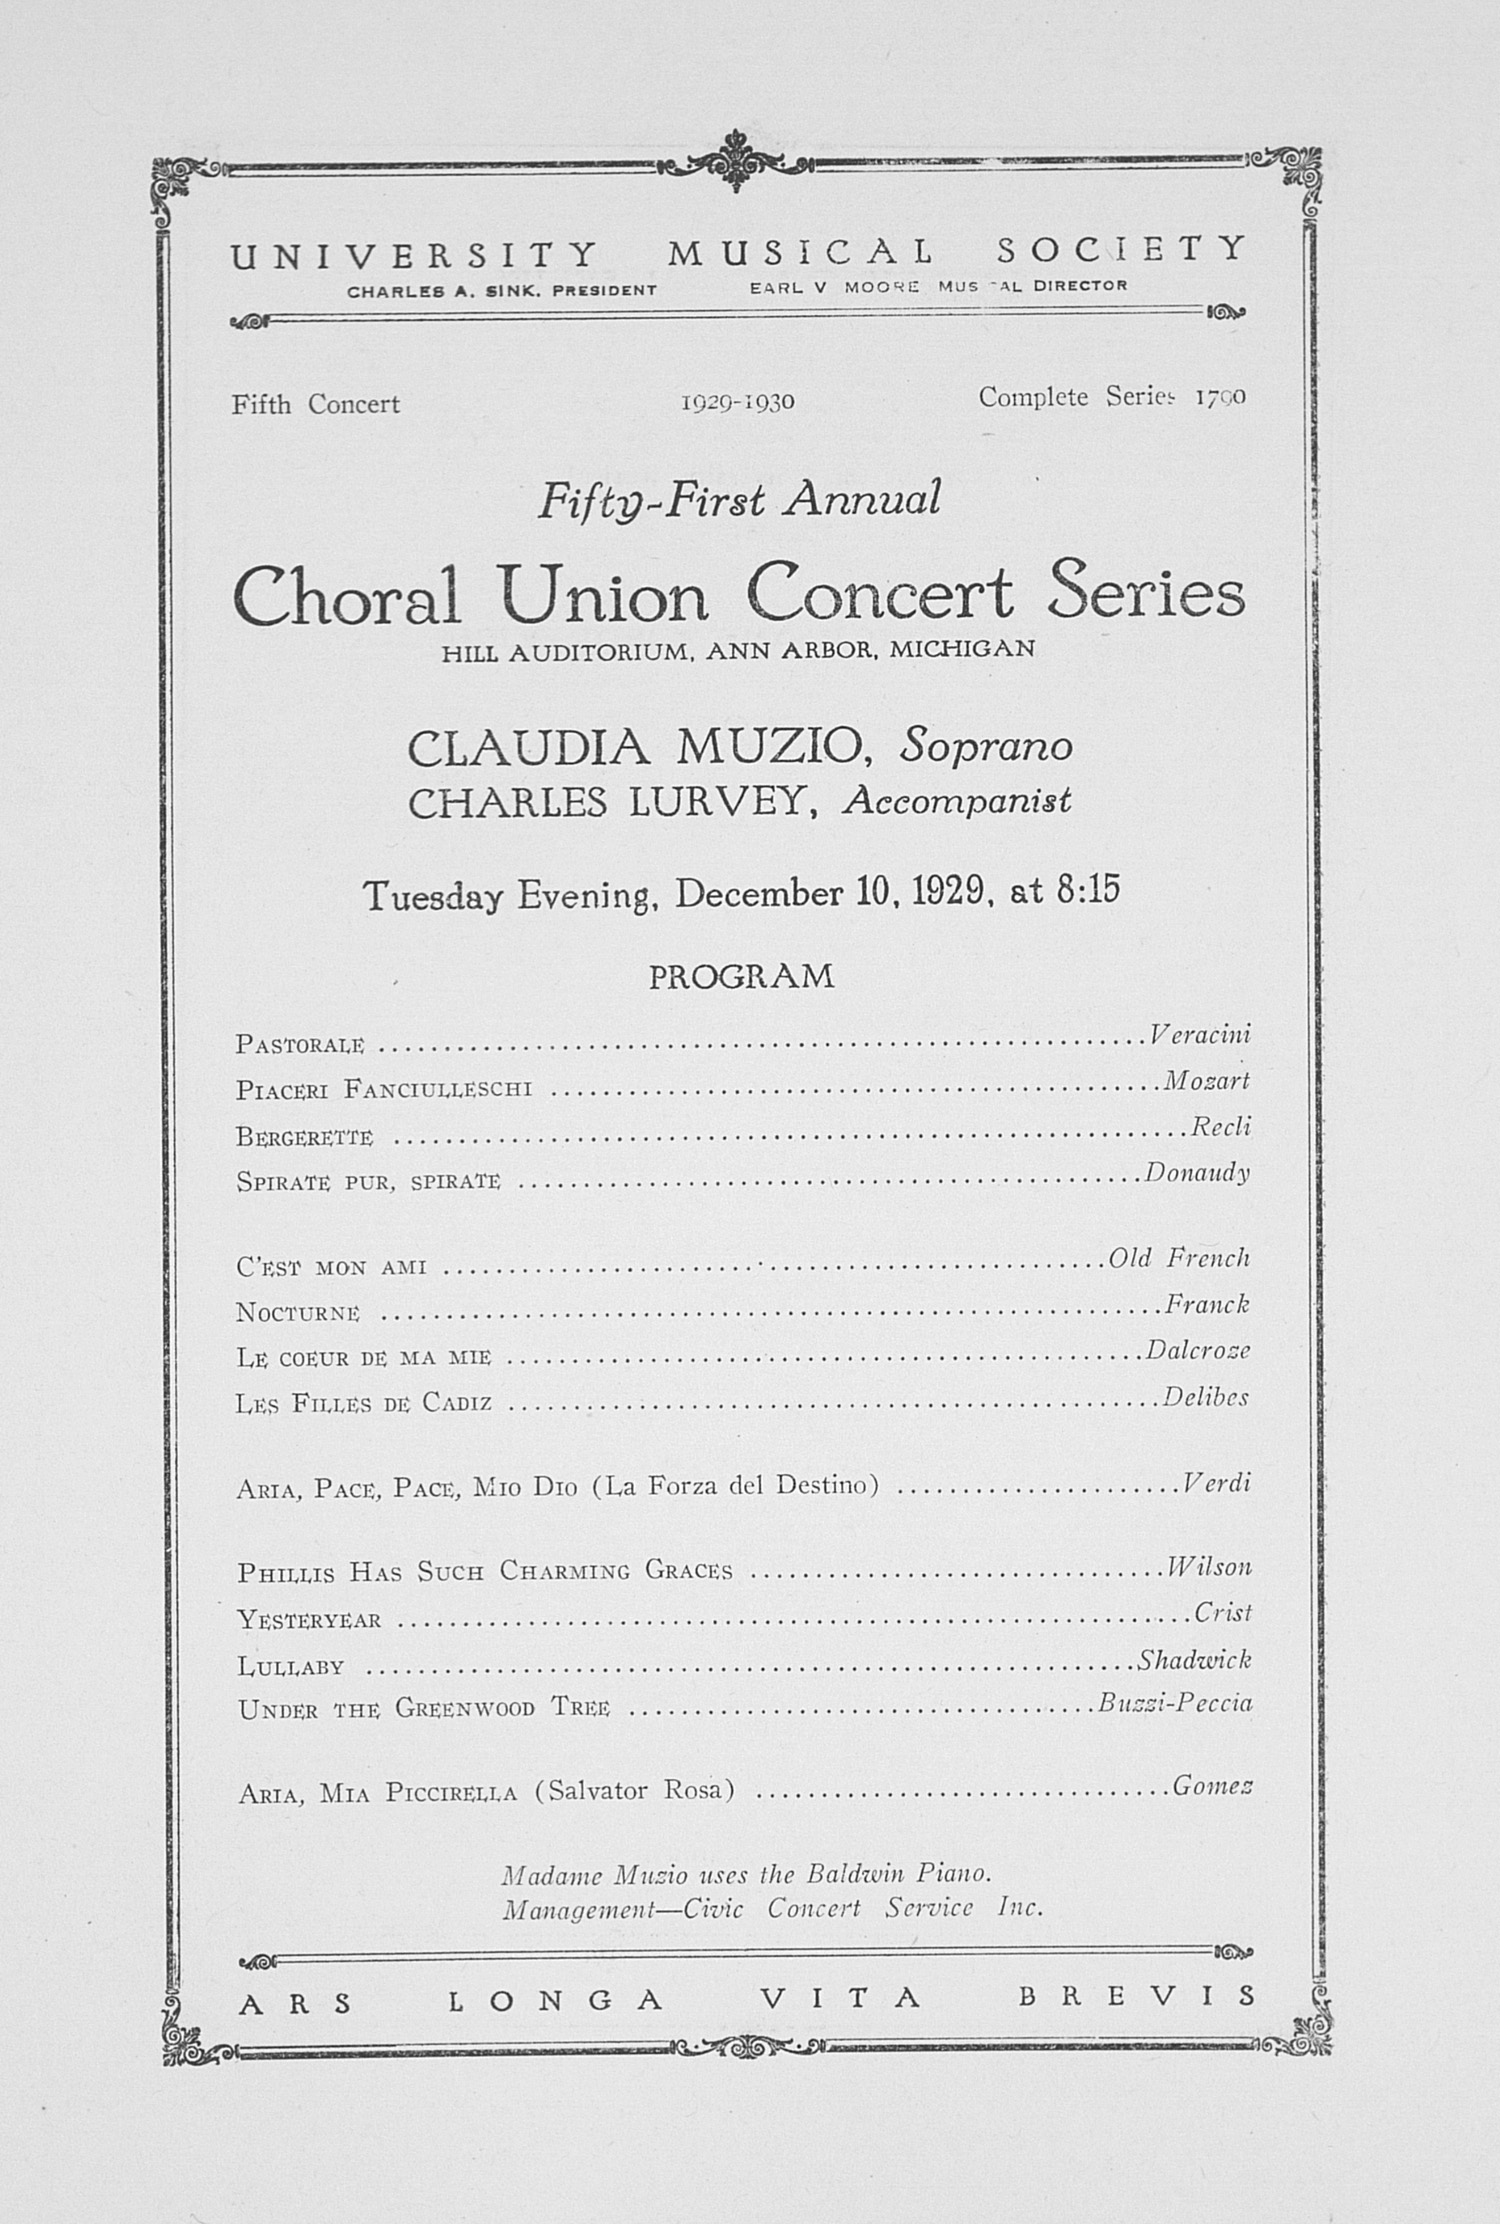 UMS Concert Program, December 10, 1929: Fifty-first Annual Choral Union Concert Series -- Claudia Muzio image